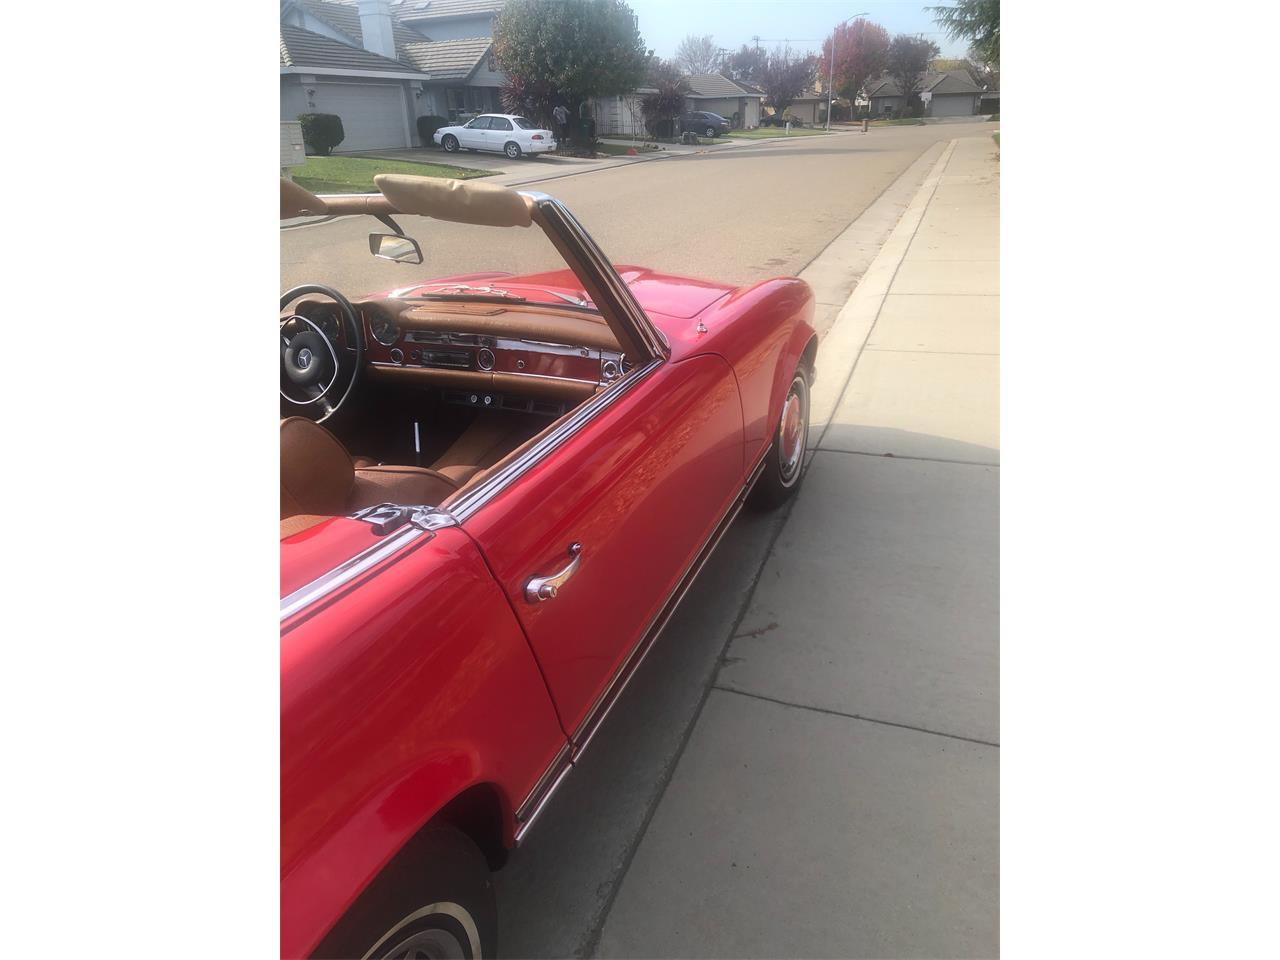 Large Picture of Classic 1969 Mercedes-Benz 280SL located in Lodi  California - $81,500.00 Offered by a Private Seller - PUZ0